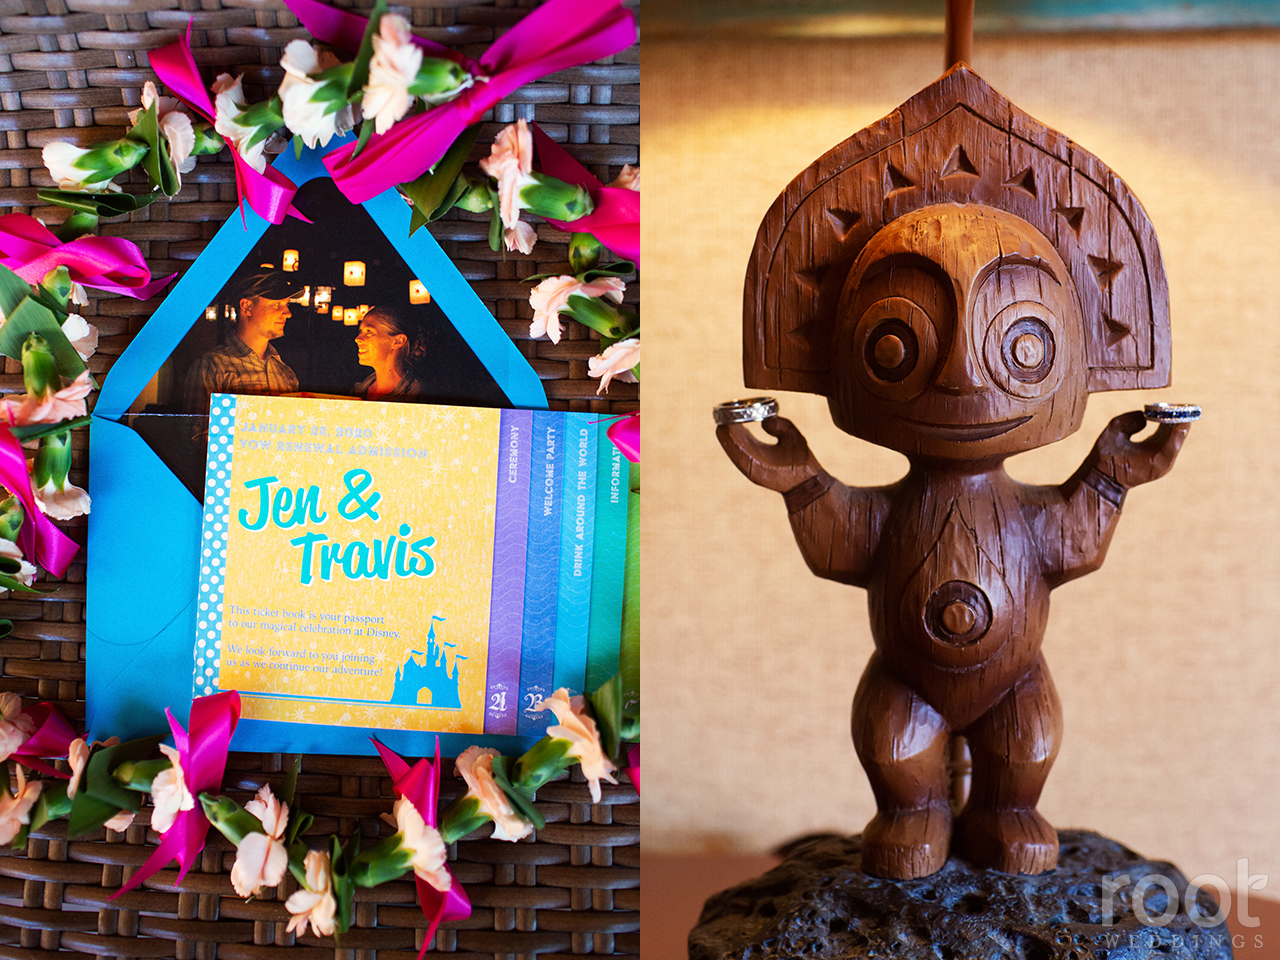 Vow renewal details at Disney's Polynesian Resort